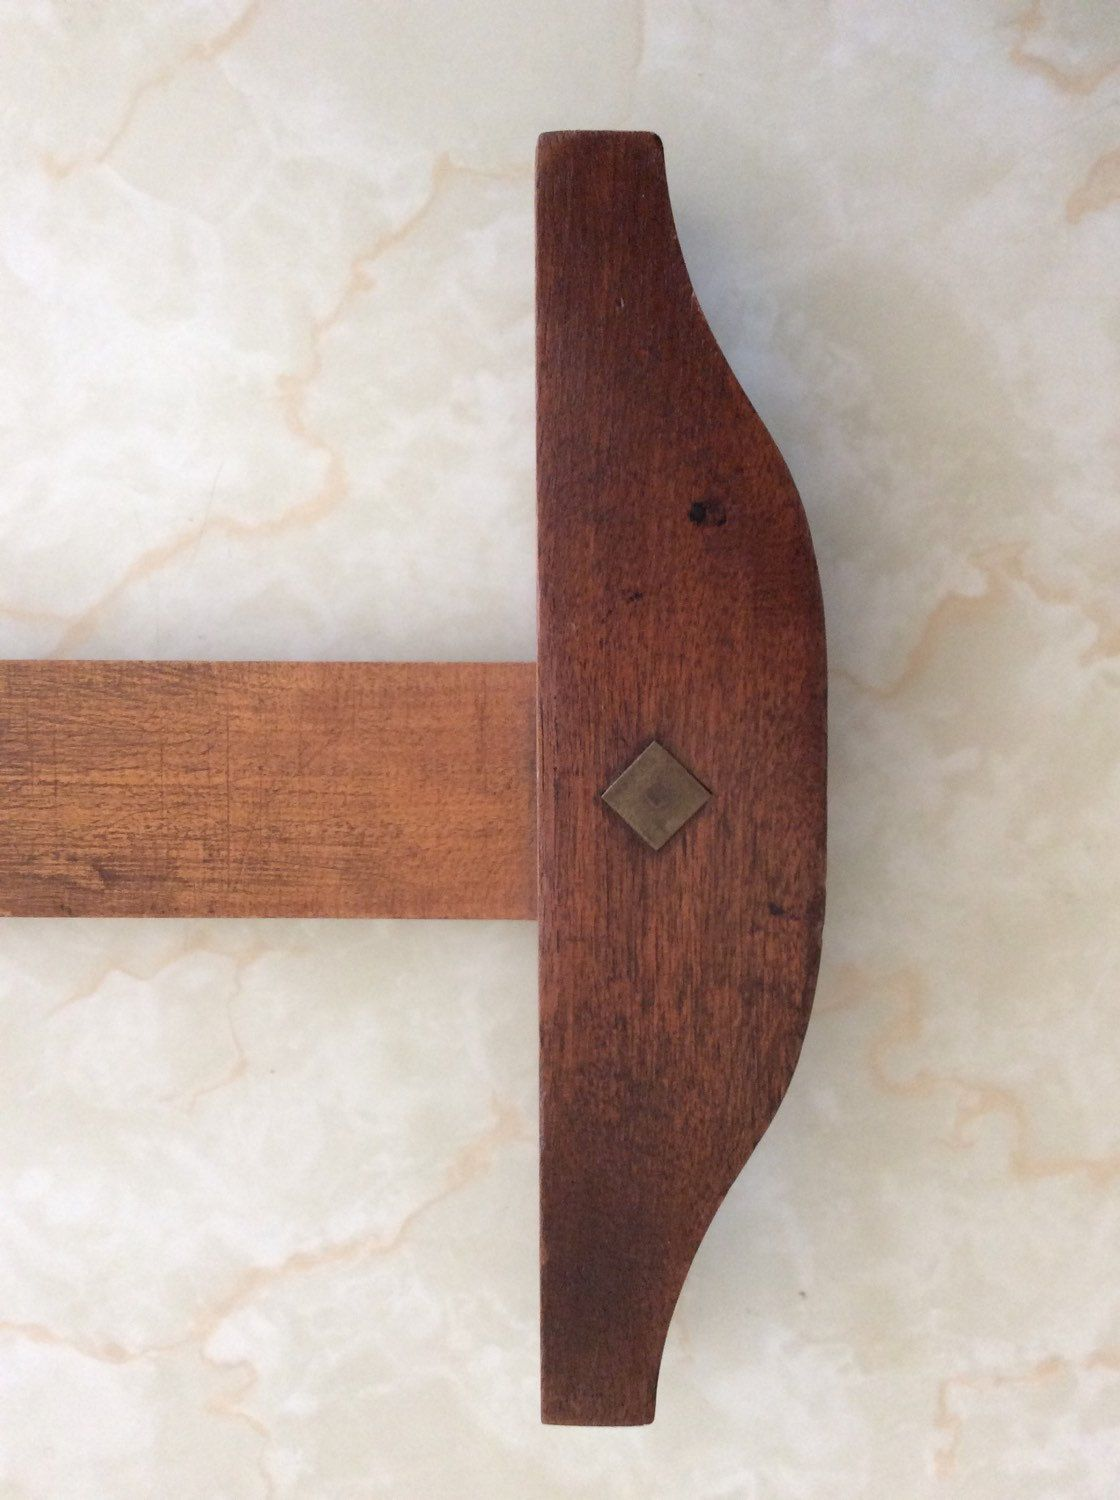 Antique Wooden T Square Straight Edge Vintage Drafting Tool Industrial Wooden Bottle Opener Wall Wooden Straight Edges